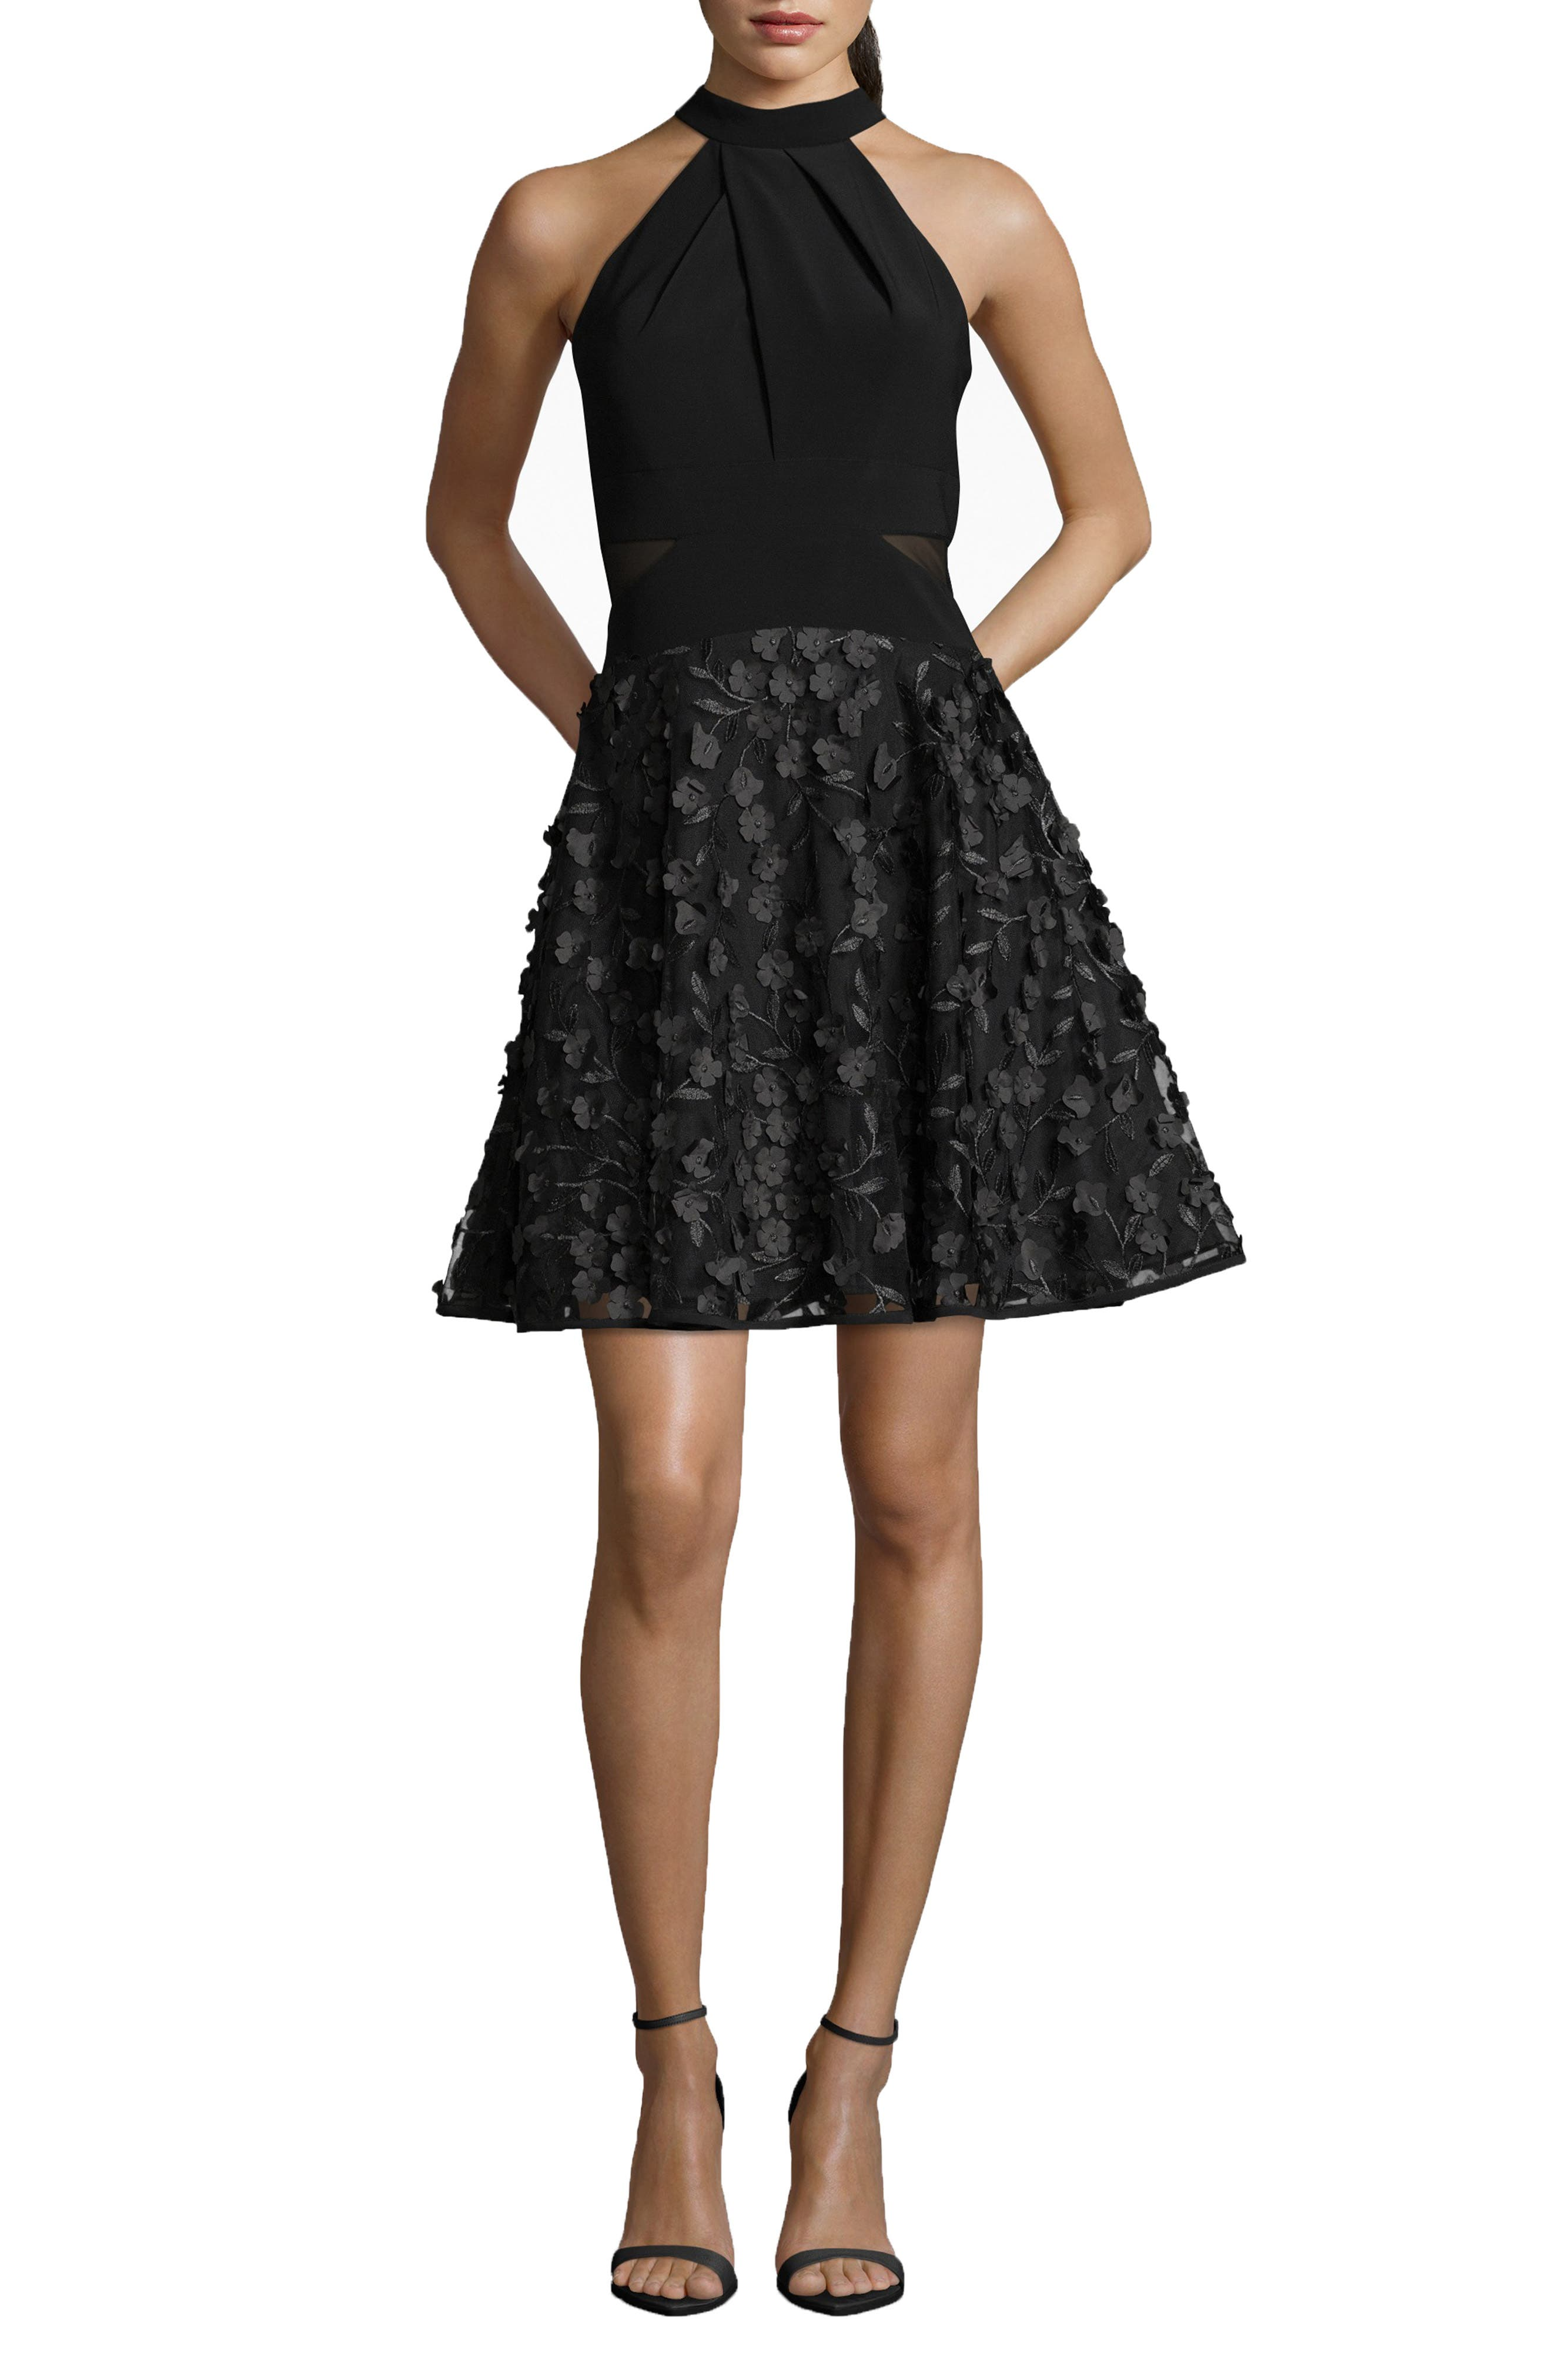 3D Floral Party Dress,                             Main thumbnail 1, color,                             BLACK/ BLACK